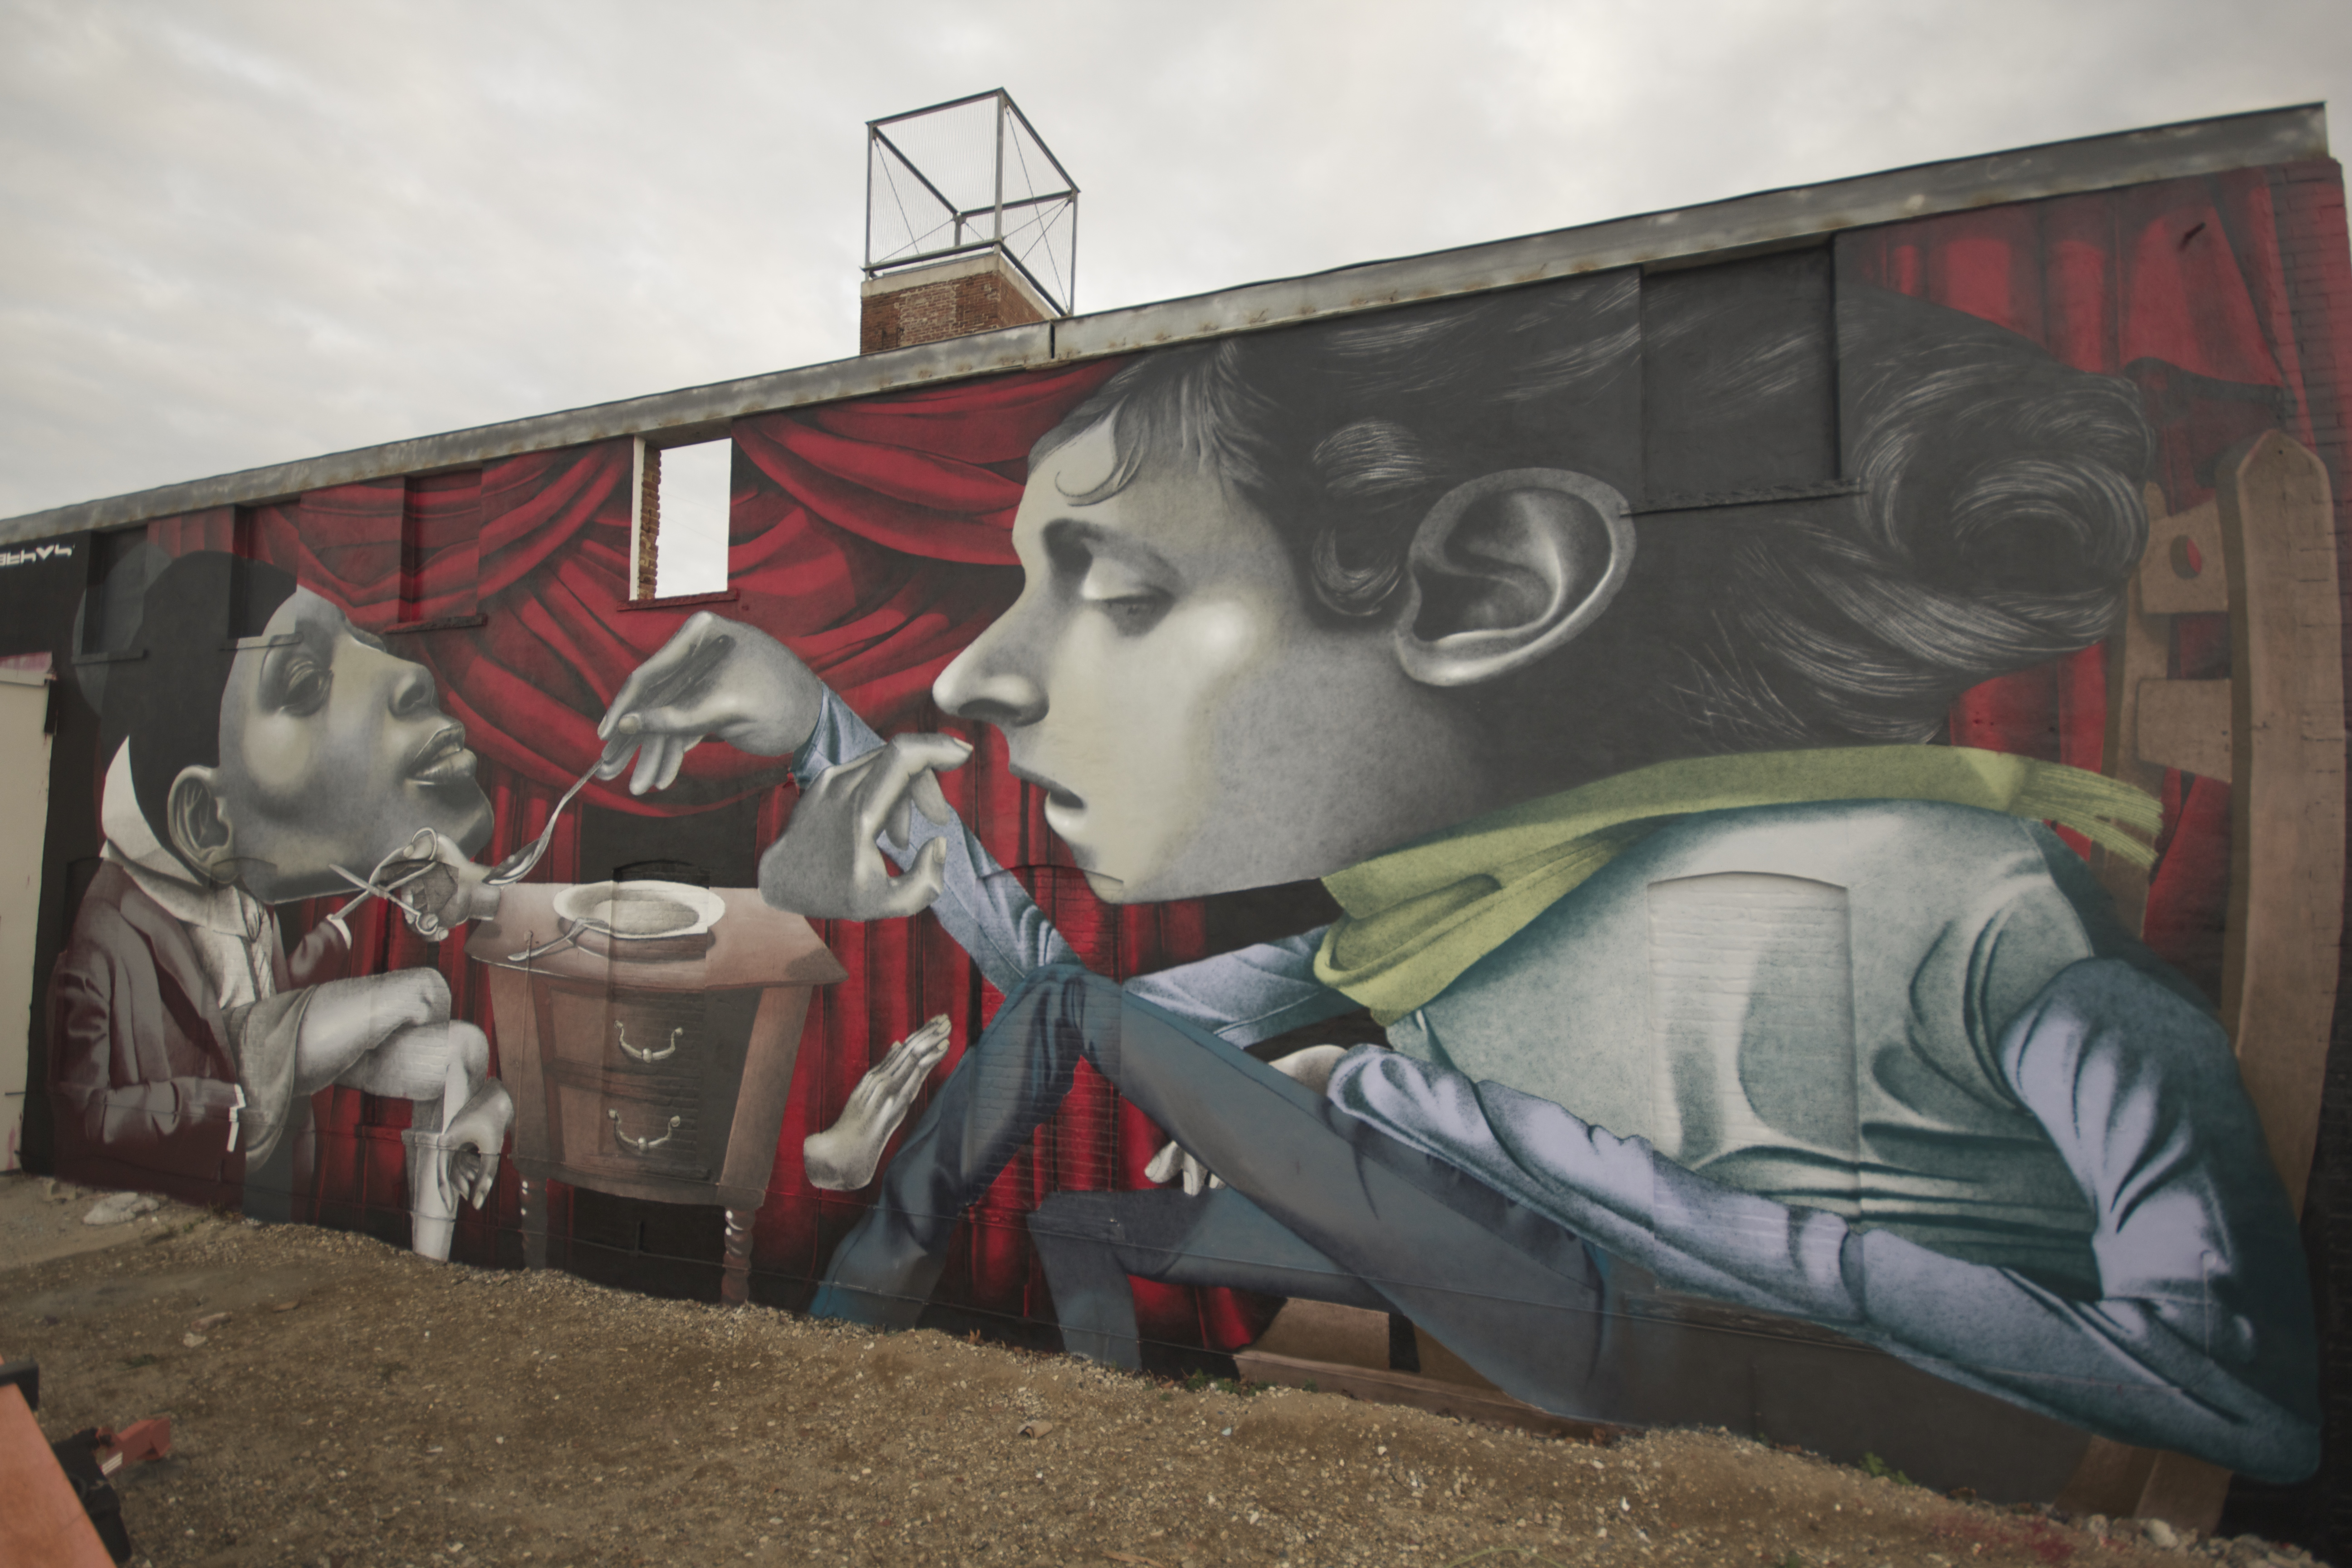 Two new murals from Ethos in Switzerland and USA Artes & contextos Ethos 5